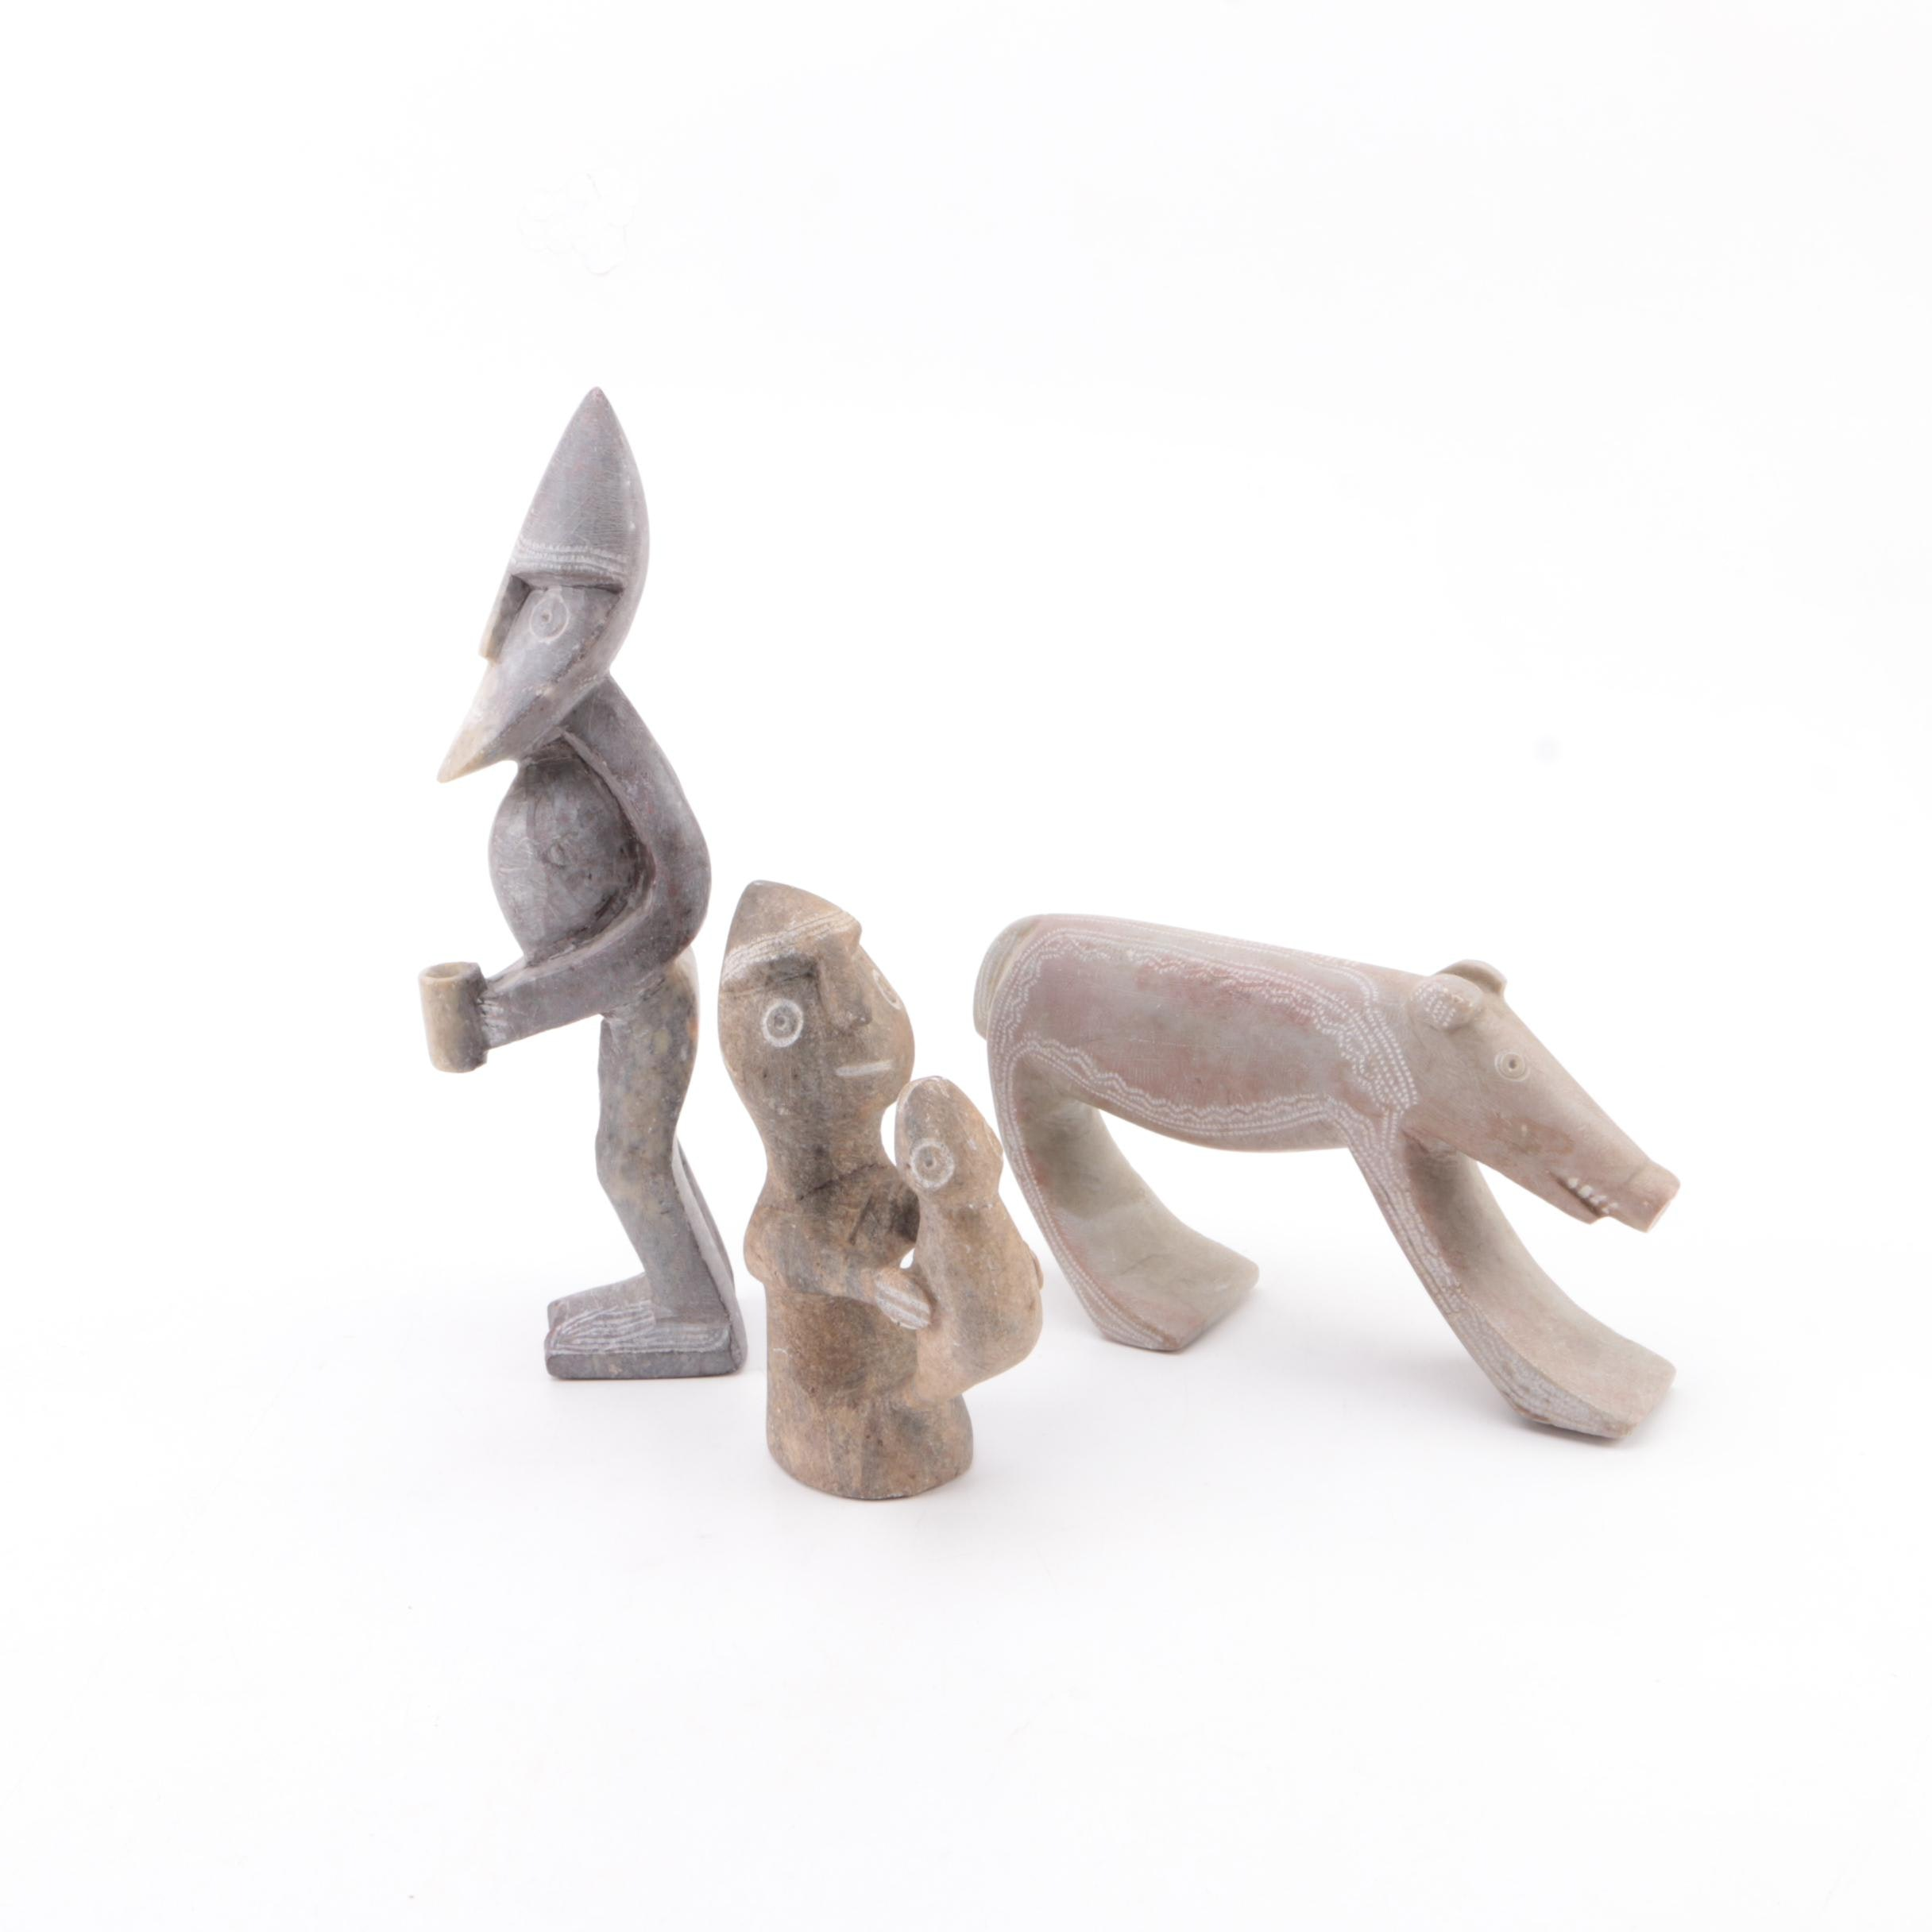 Southern African Style Carved Soapstone Figures